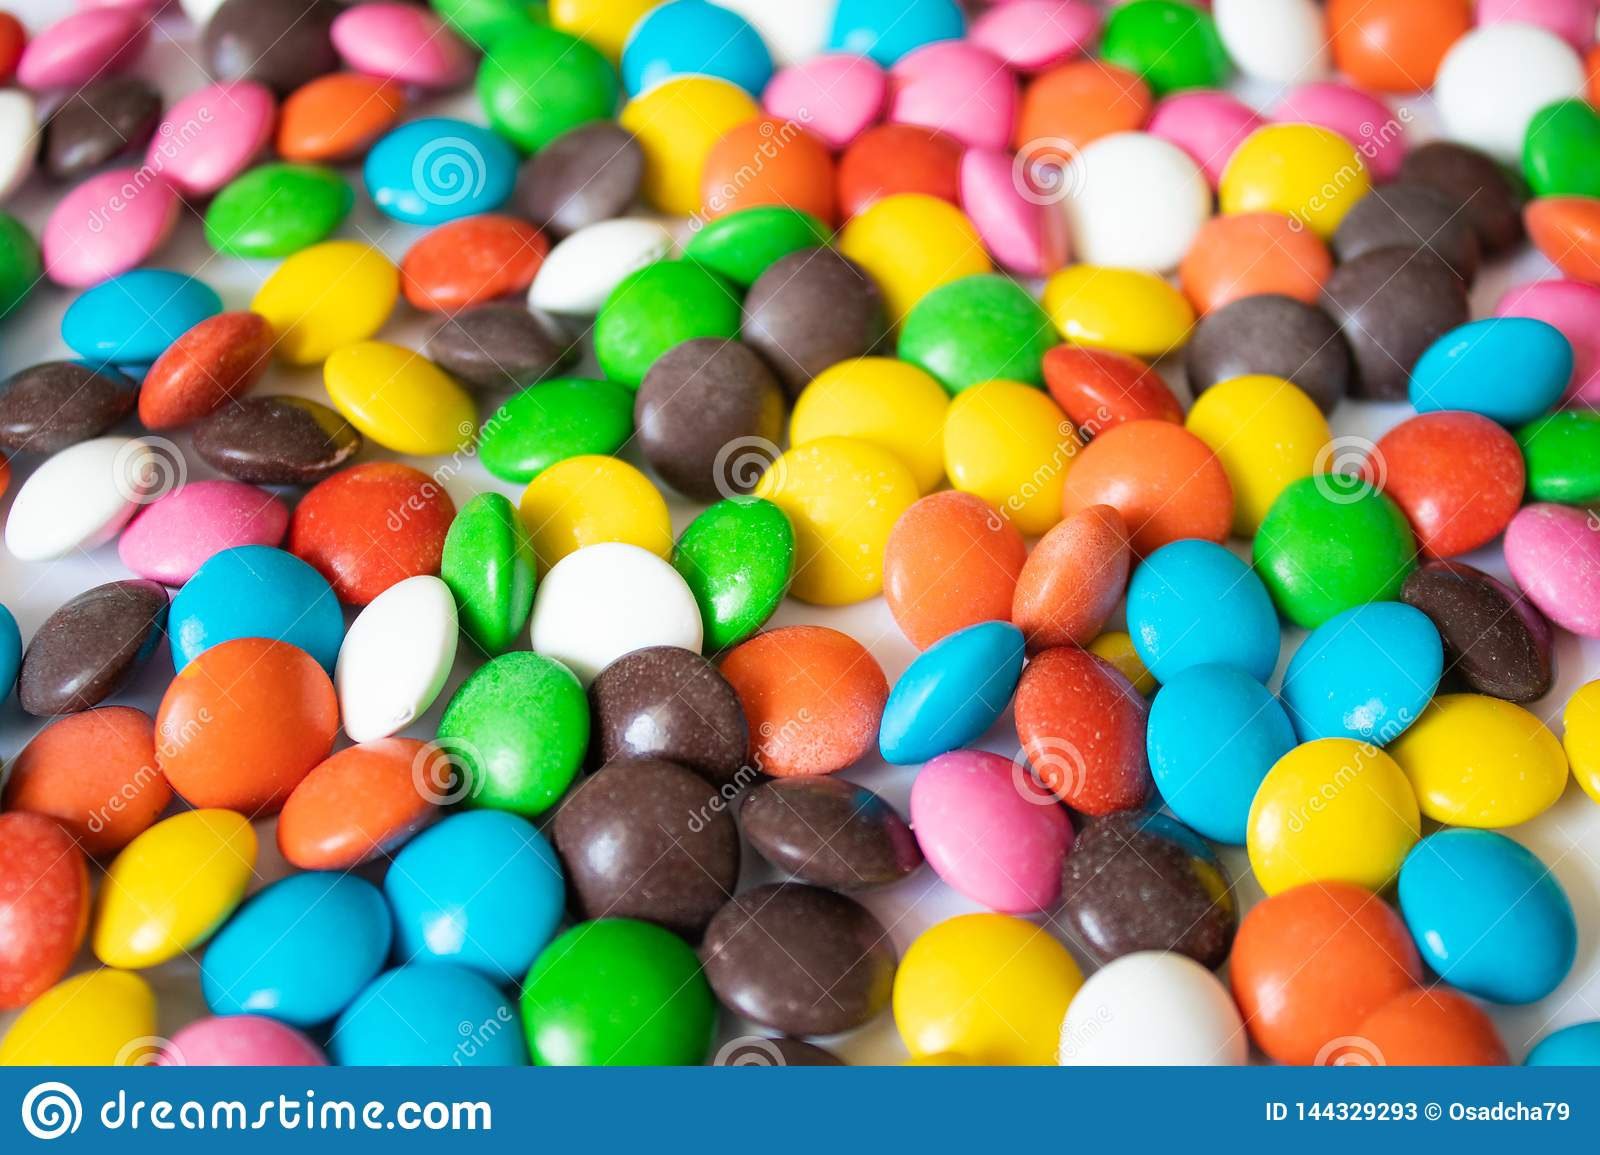 Round, multi-colored, chocolates. A pile of multicolored candies